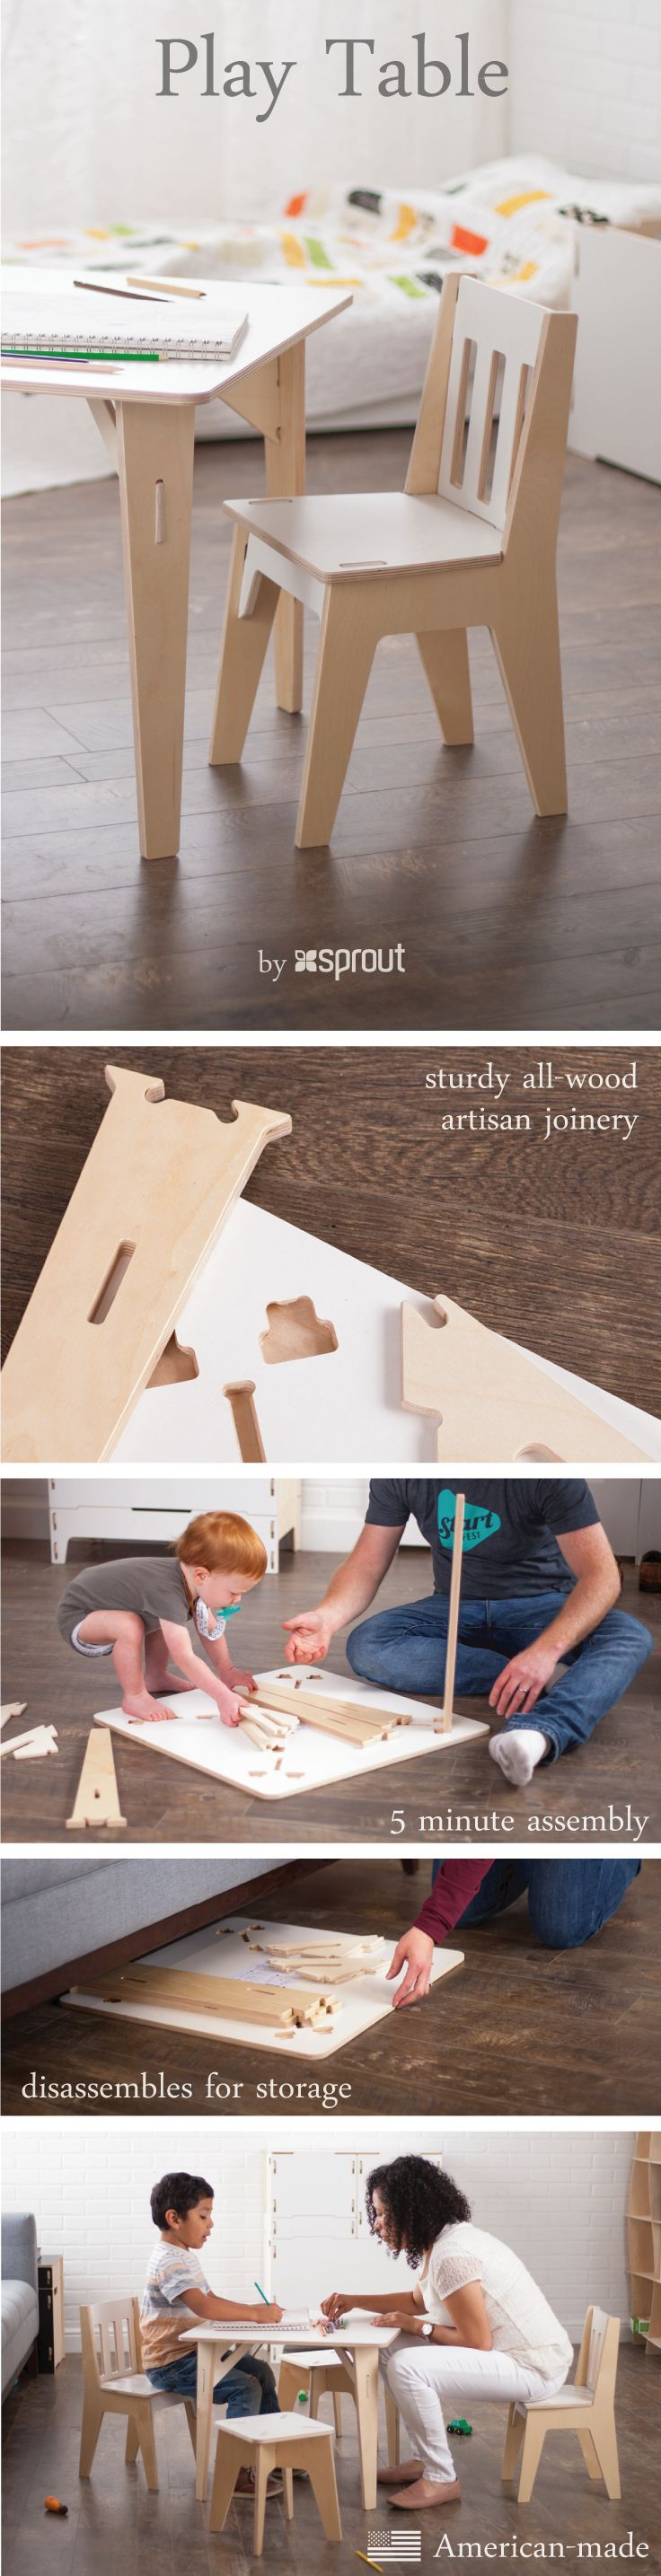 Create the foundation of a little studio for your kids with Sprout's kids wooden table and chairs.  The tool-less artisan joinery makes assembling the table so easy that your toddlers can help! Disassembly is just as simple, with easy flat pack storage options.   Learn more about the child table and chairs at Sprout.